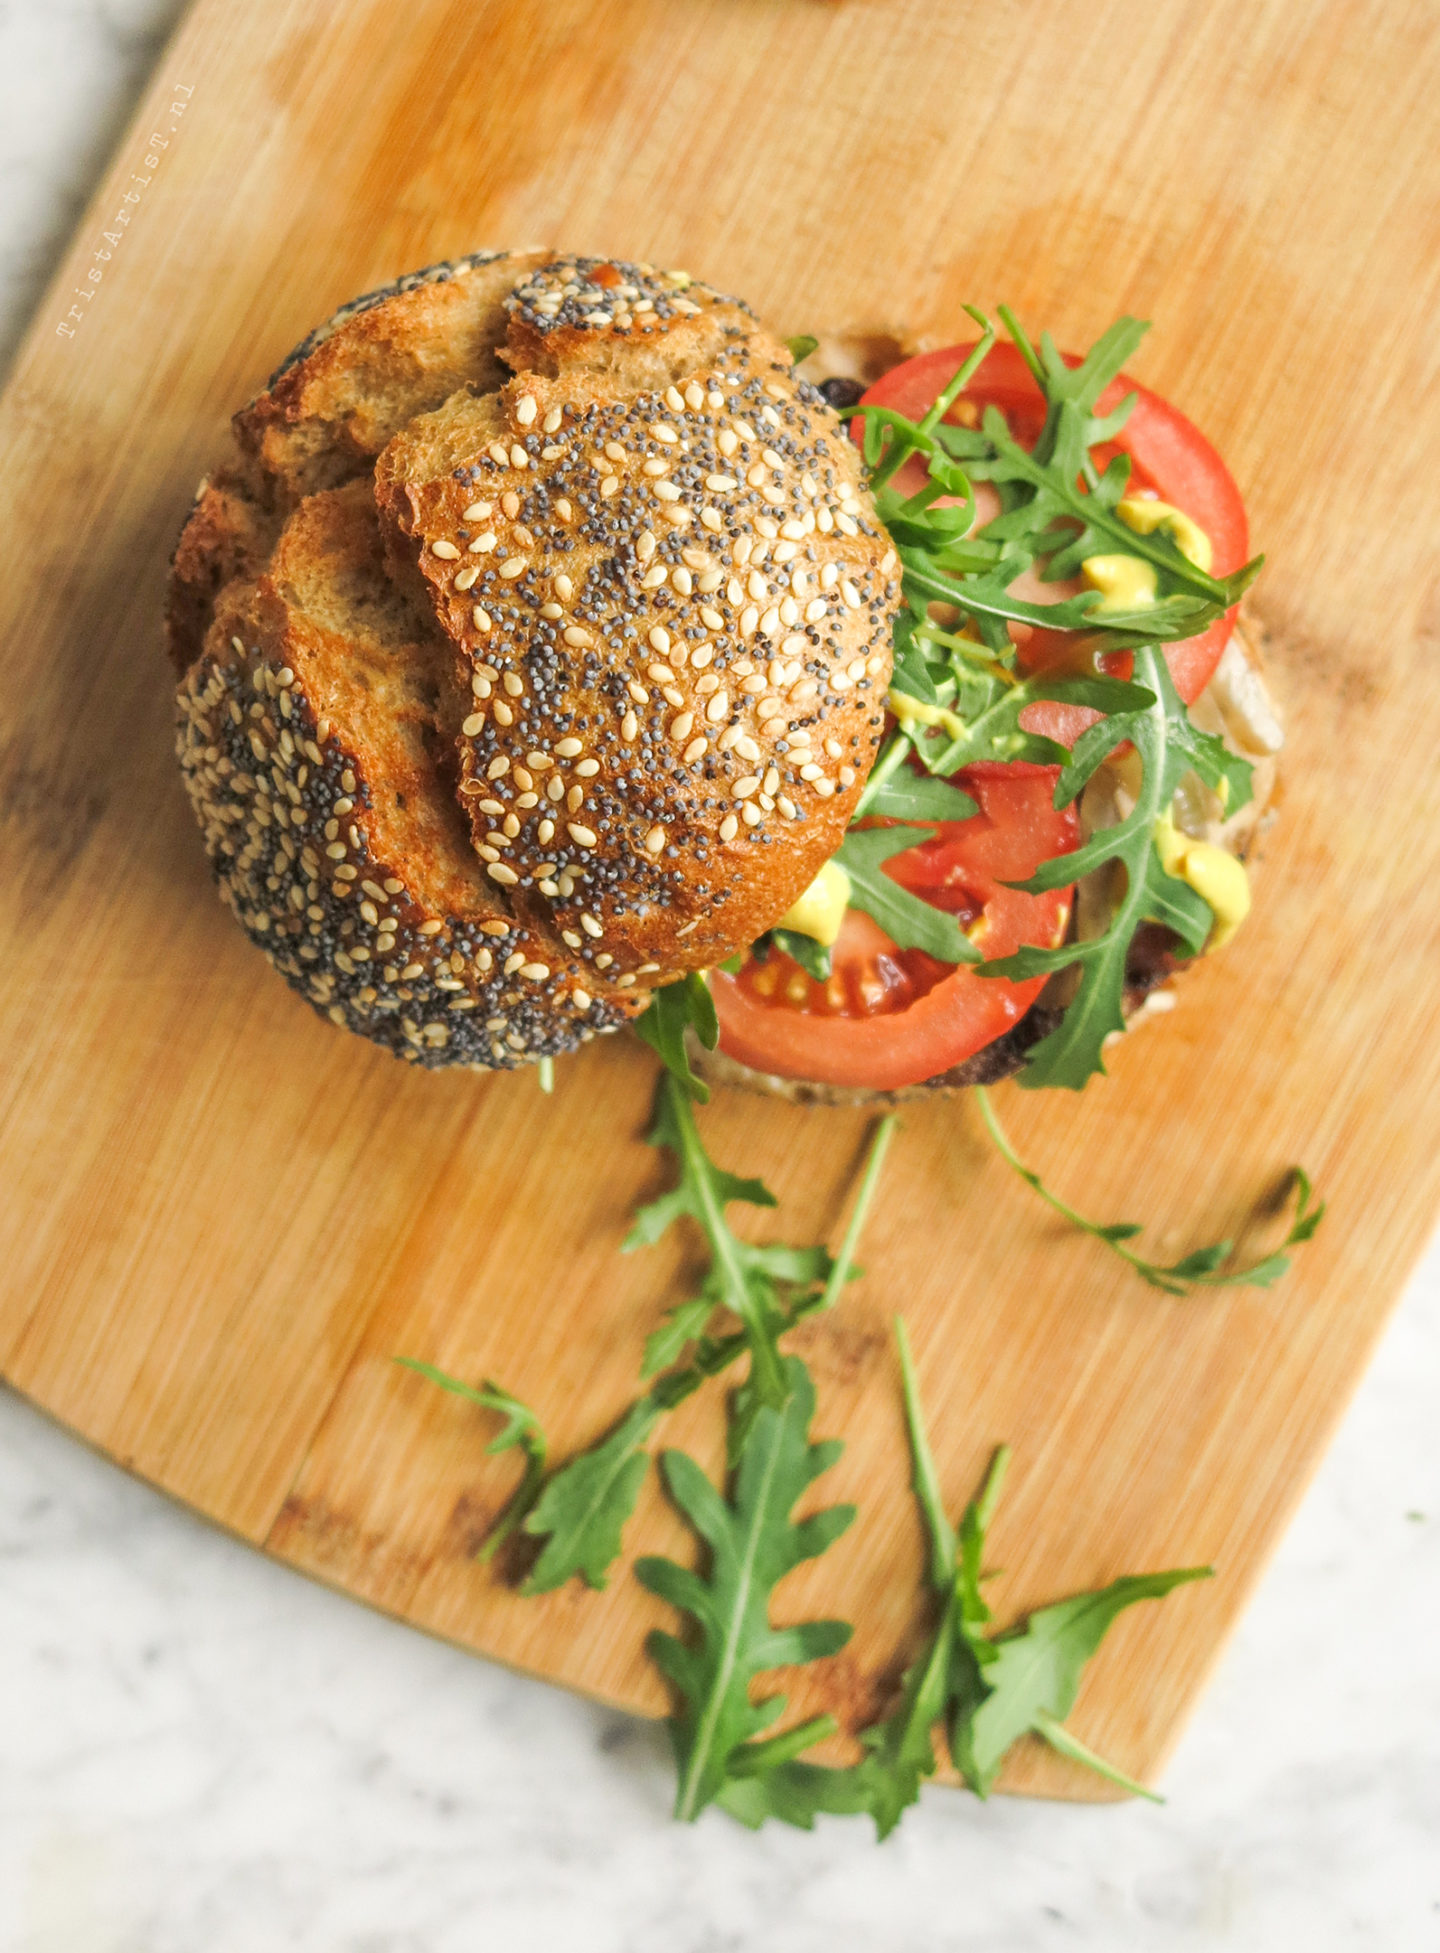 VEGAN FRIDAY ROCKET BURGER